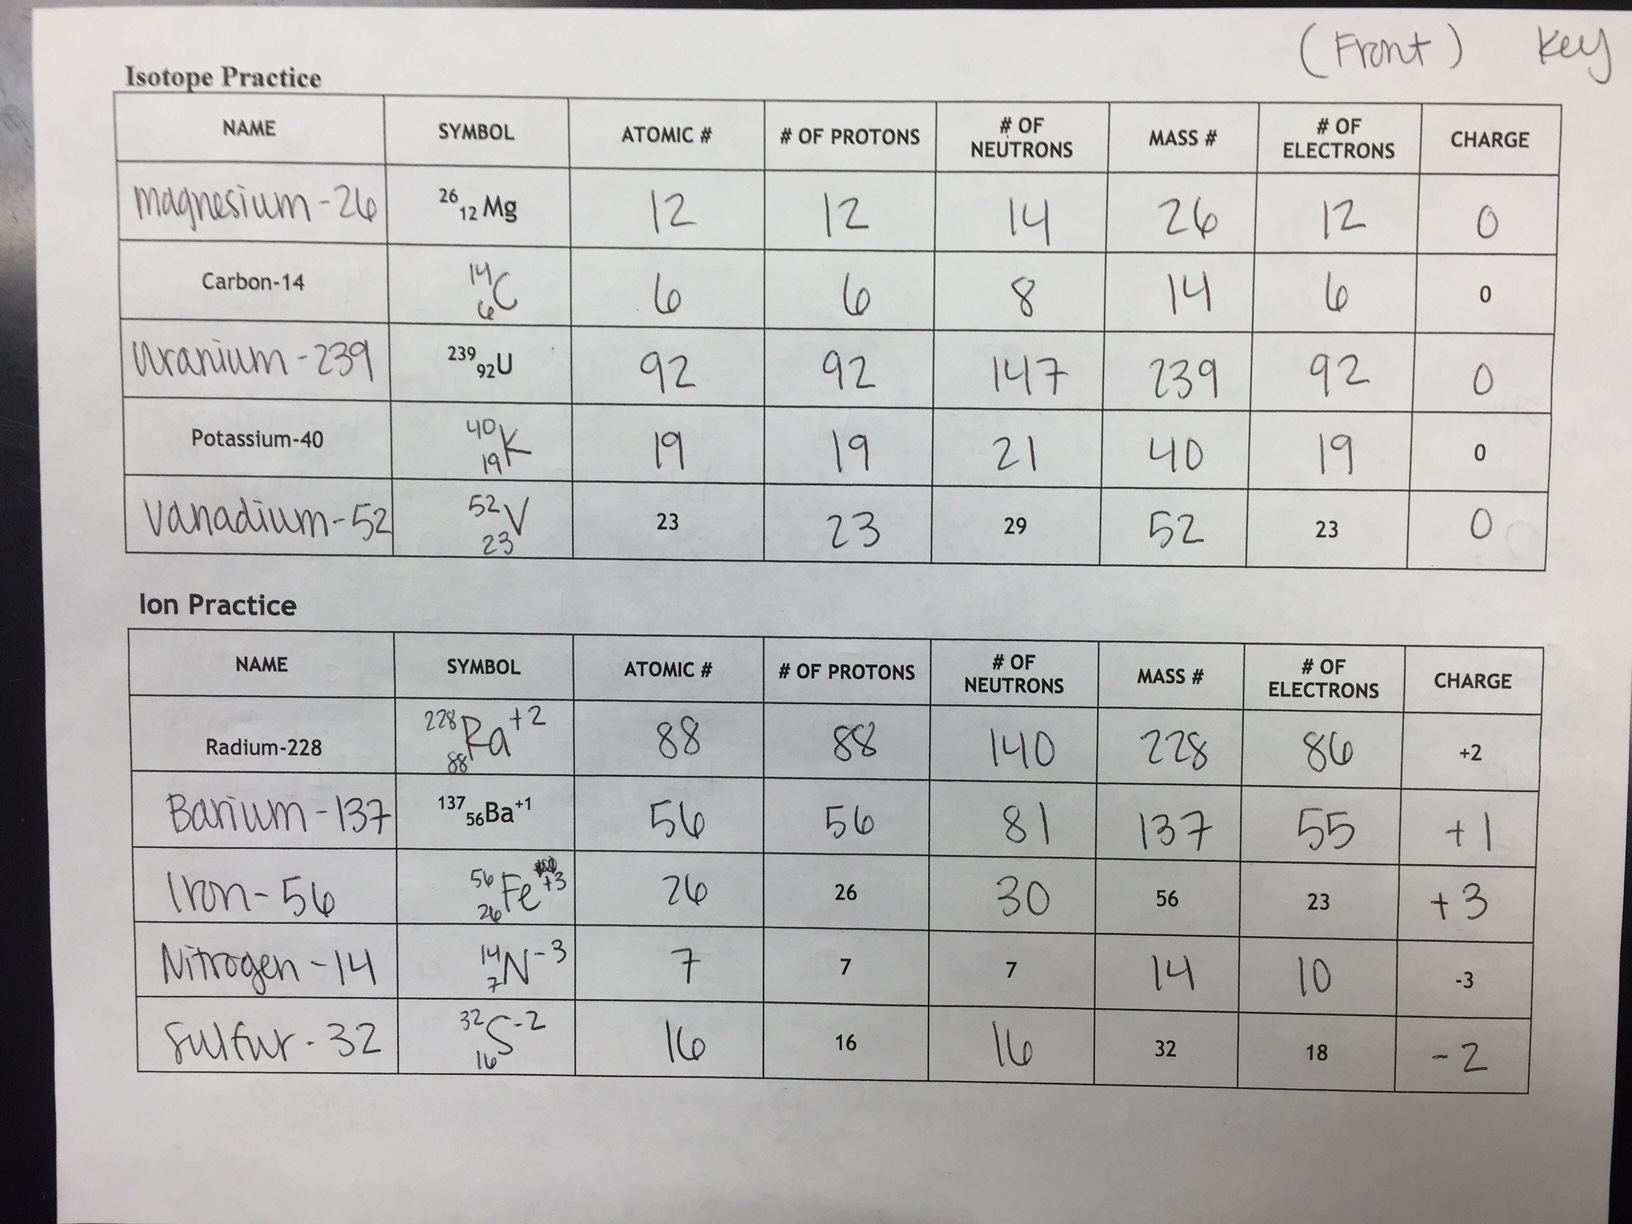 Worksheet Atomic Structure Worksheet Answer Key unit 2 atomic structure ms holls physical science class answer key 5 isotope and ion practice key